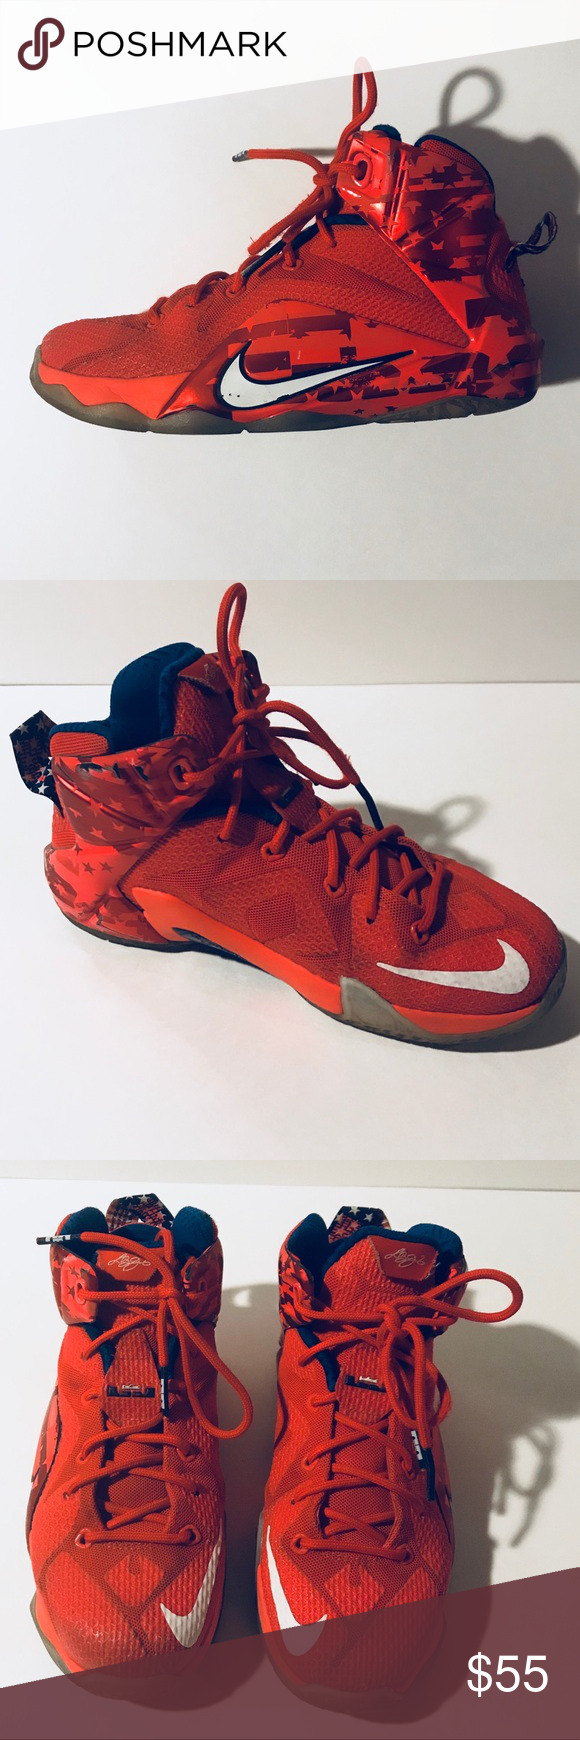 best loved 7a025 aa9c3 ... shop nike labron 12 basketball shoes youth size 4 usa nike lebron 12 red  white and